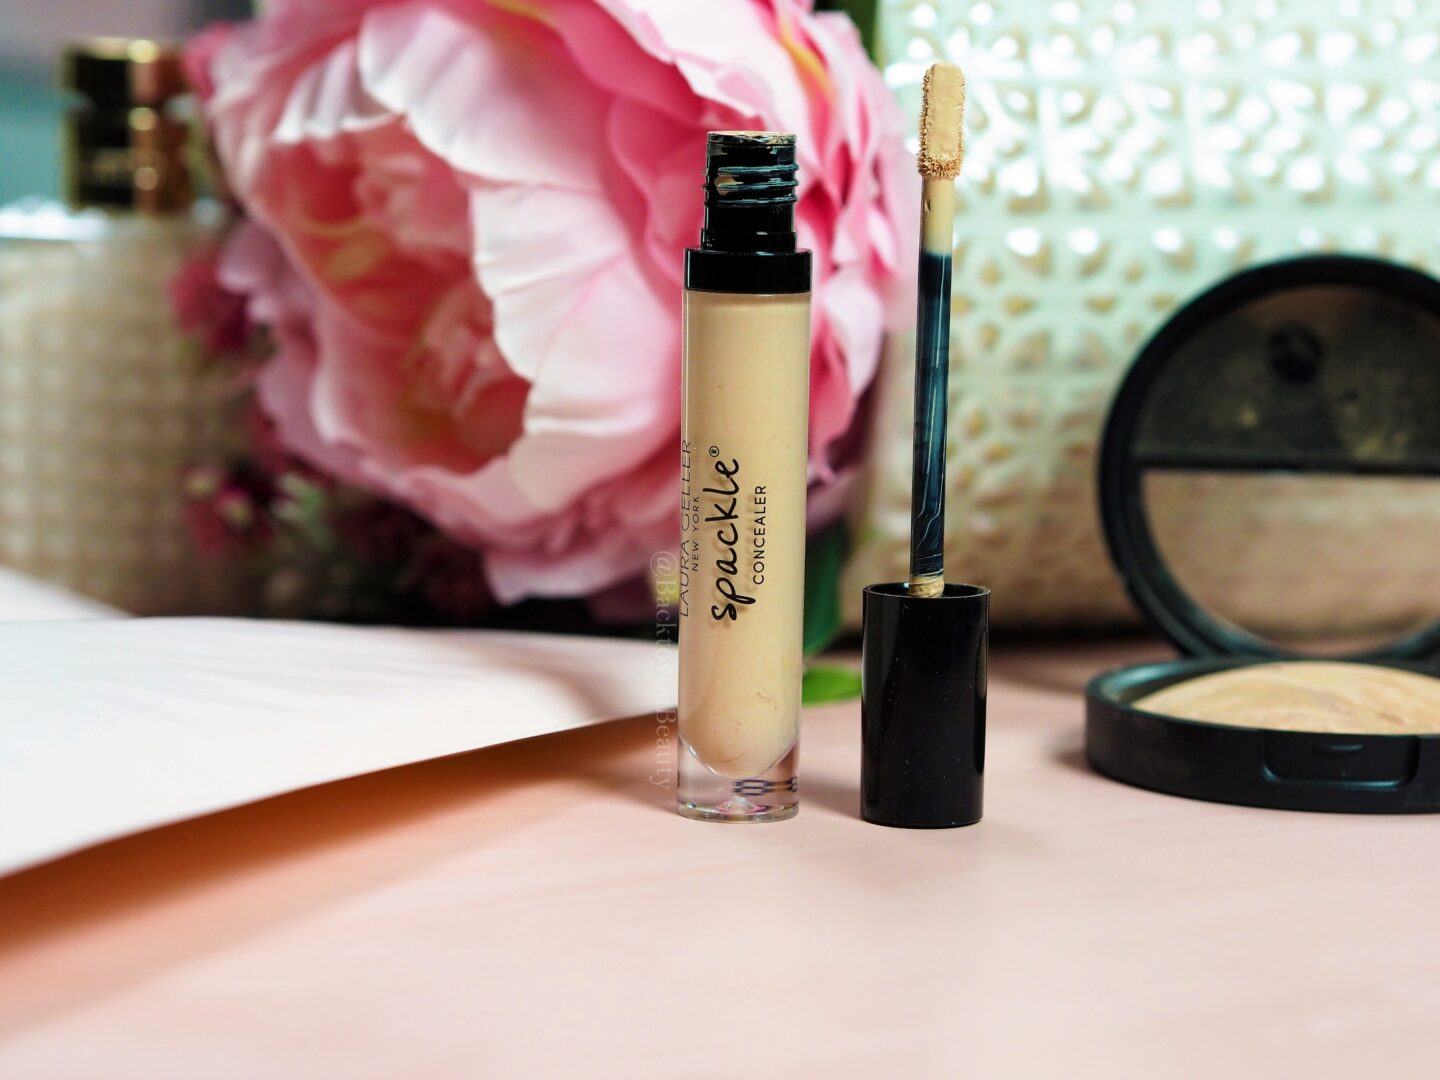 Laura Geller Spackle Concealer in Light